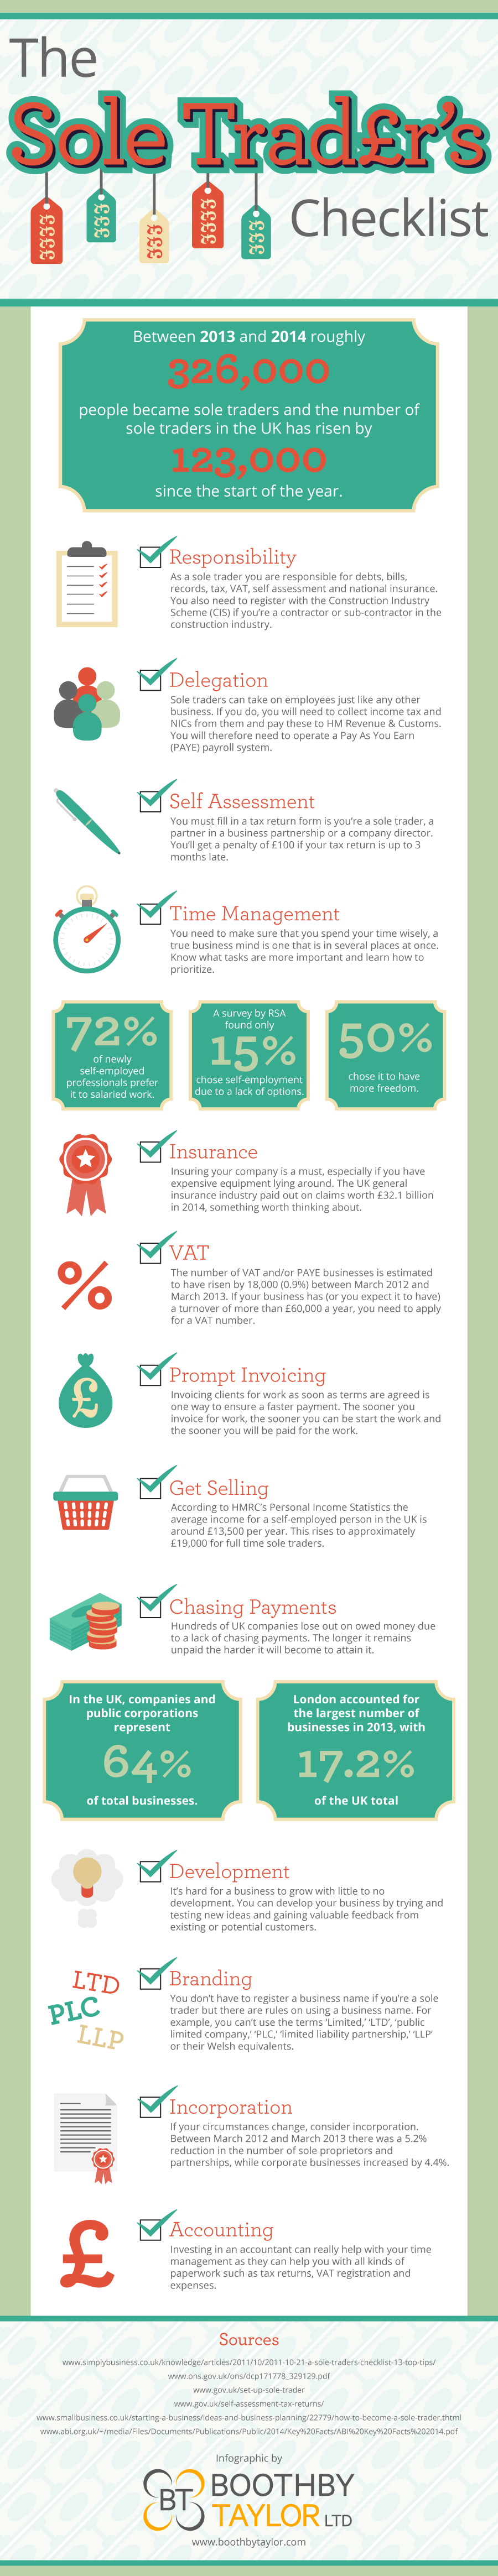 The Sole Trader S Checklist Infographic By Boothby Taylor Sole Trader Business Advice Infographic